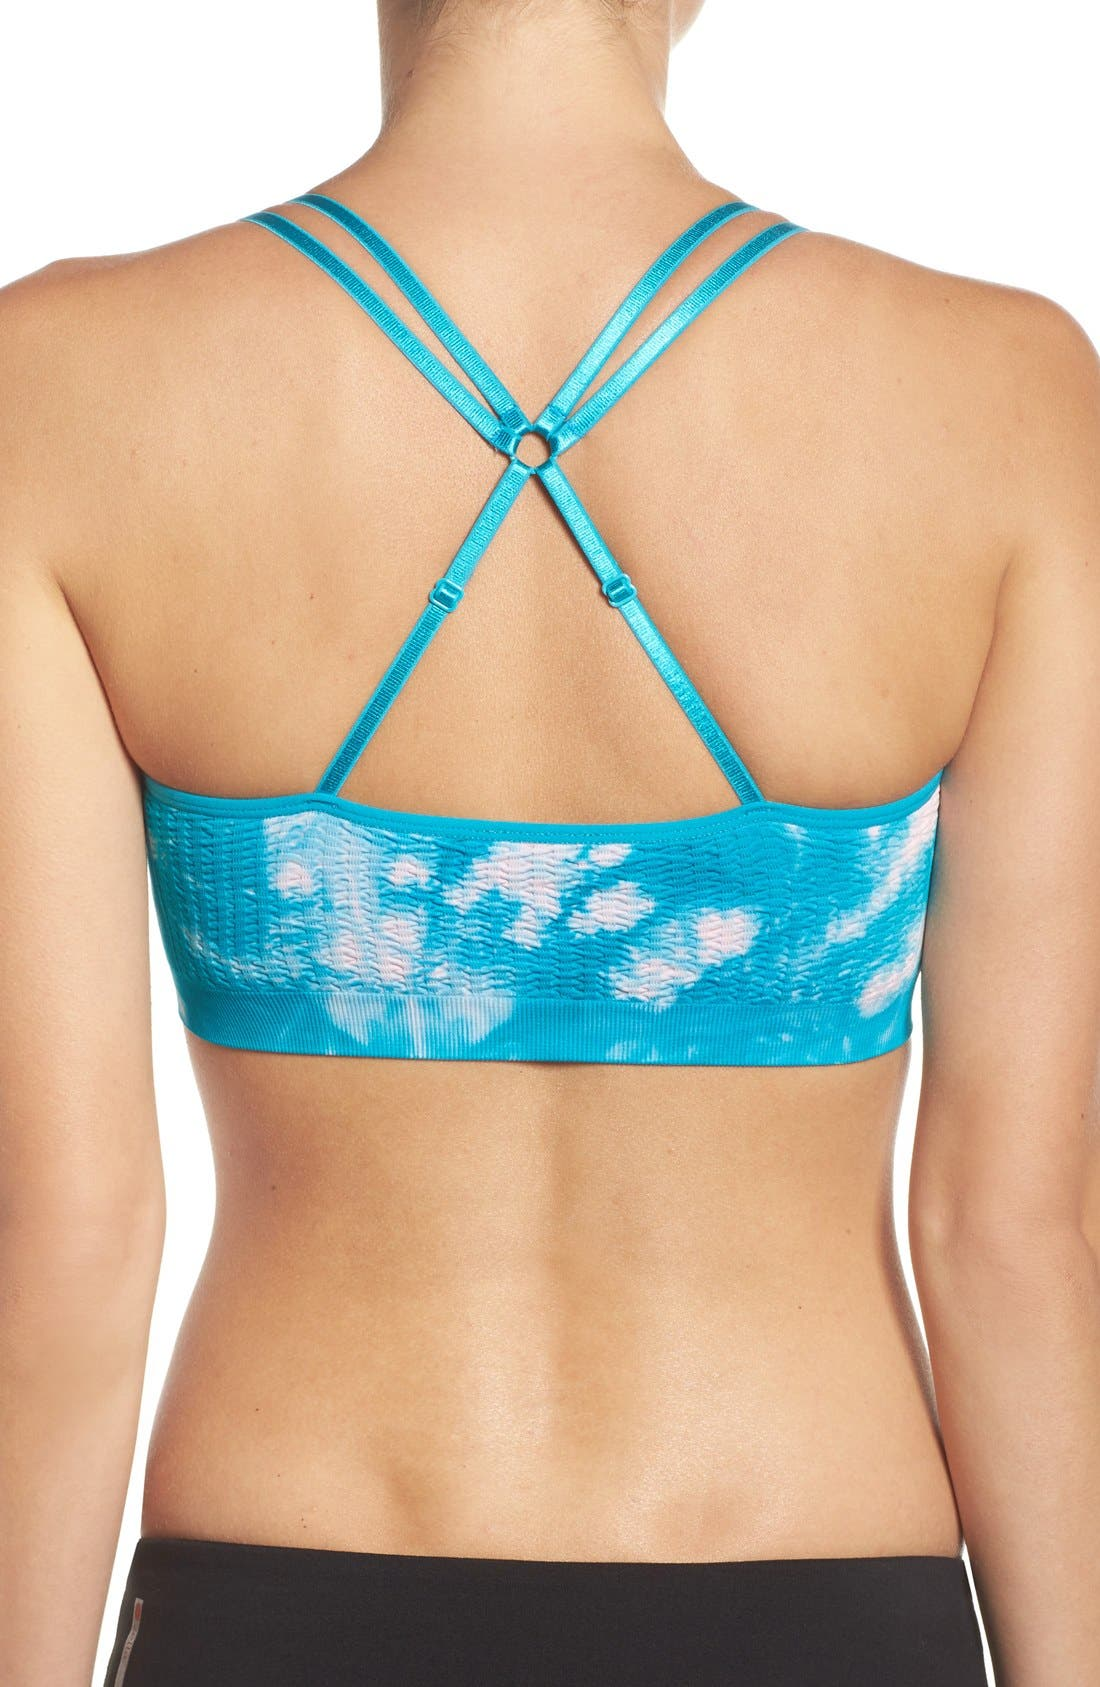 Alternate Image 2  - Climawear 'Dream Chaser' Sports Bra